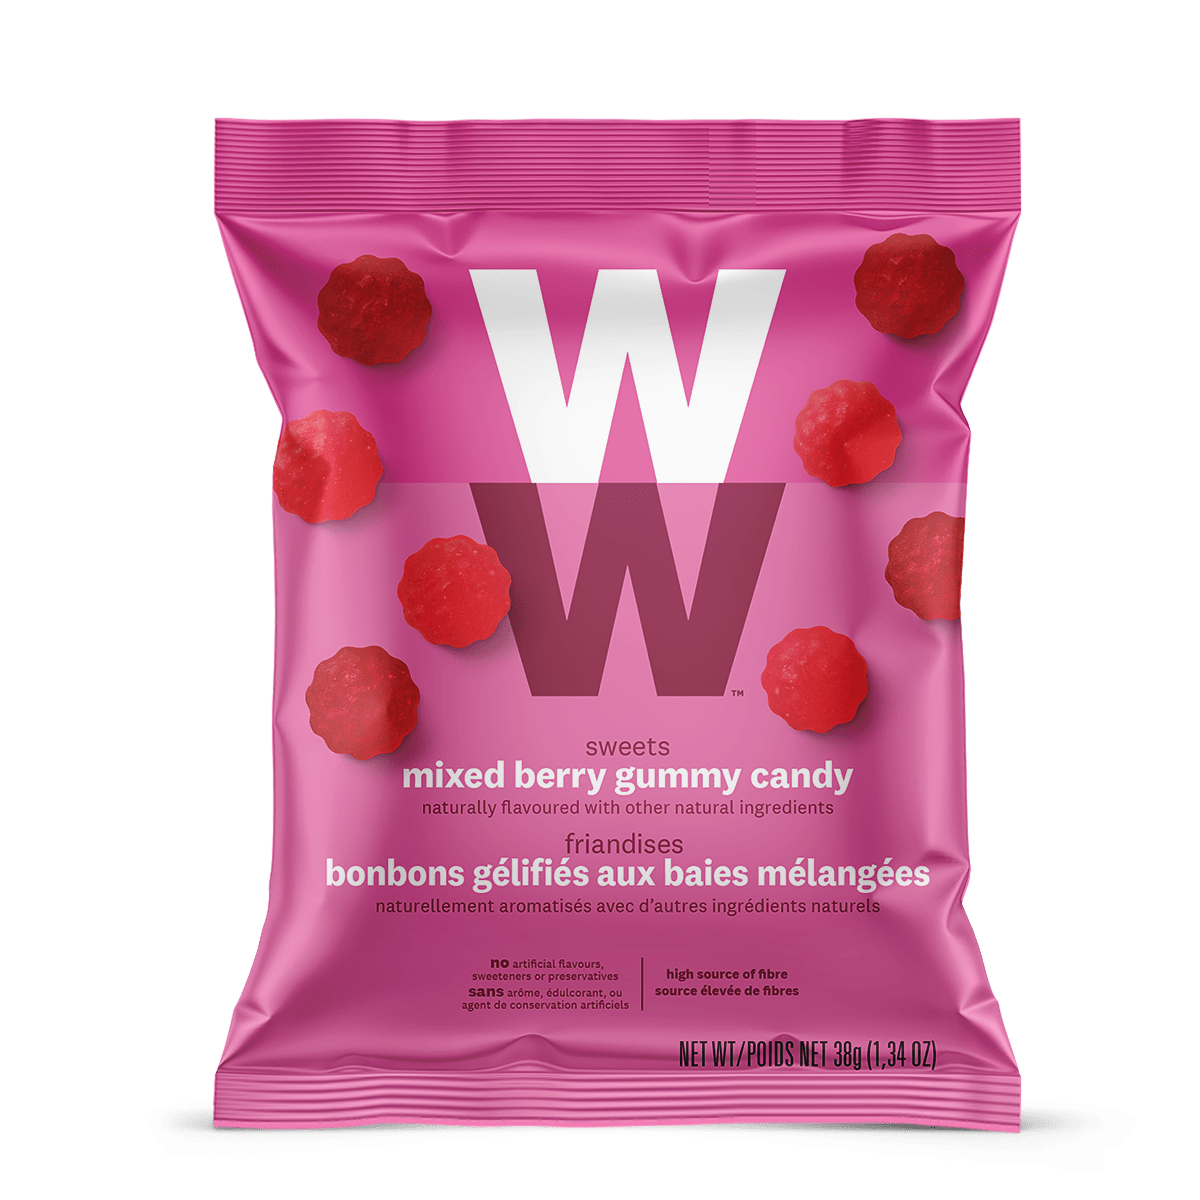 WW Sweets Mixed Berry